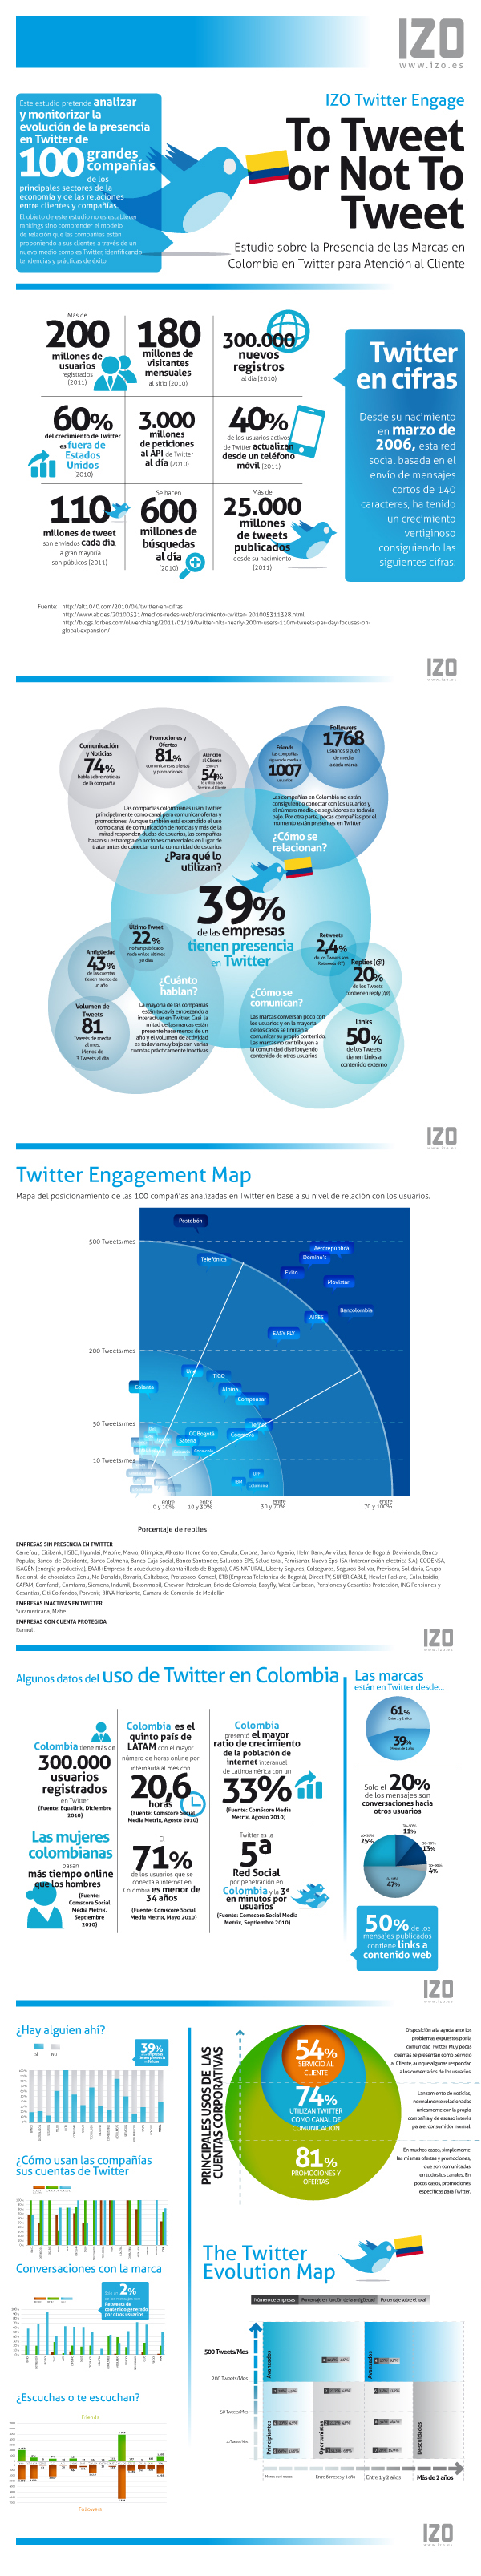 izo-witter-engage-colombi-2011